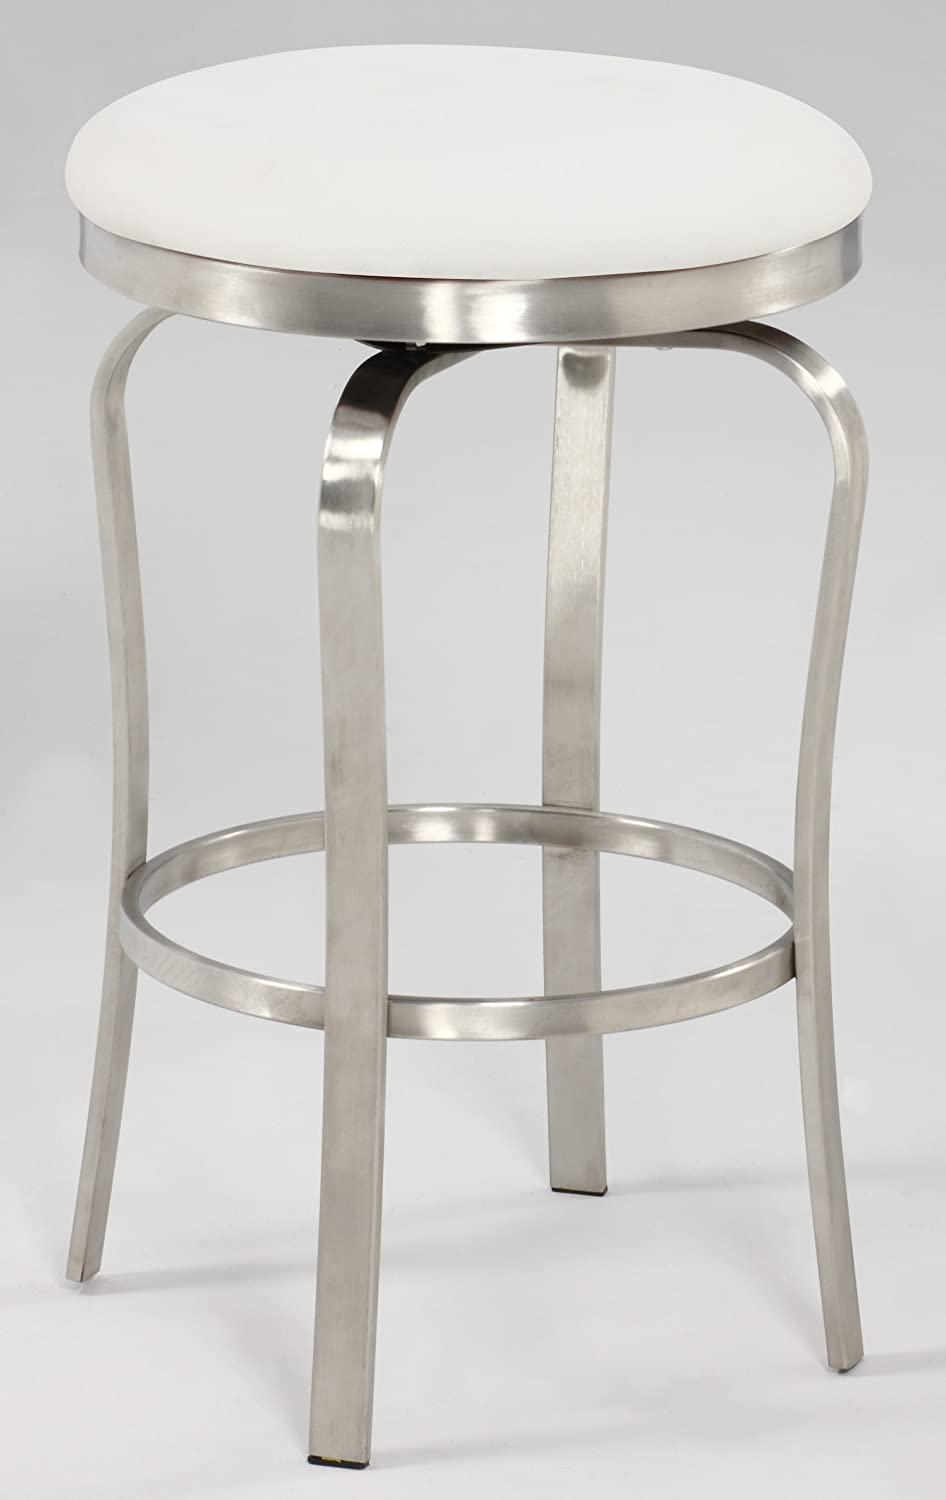 Amazon.com Chintaly Imports 1193 Modern Backless Counter Stool Brushed Stainless Steel/White PU Kitchen u0026 Dining & Amazon.com: Chintaly Imports 1193 Modern Backless Counter Stool ... islam-shia.org